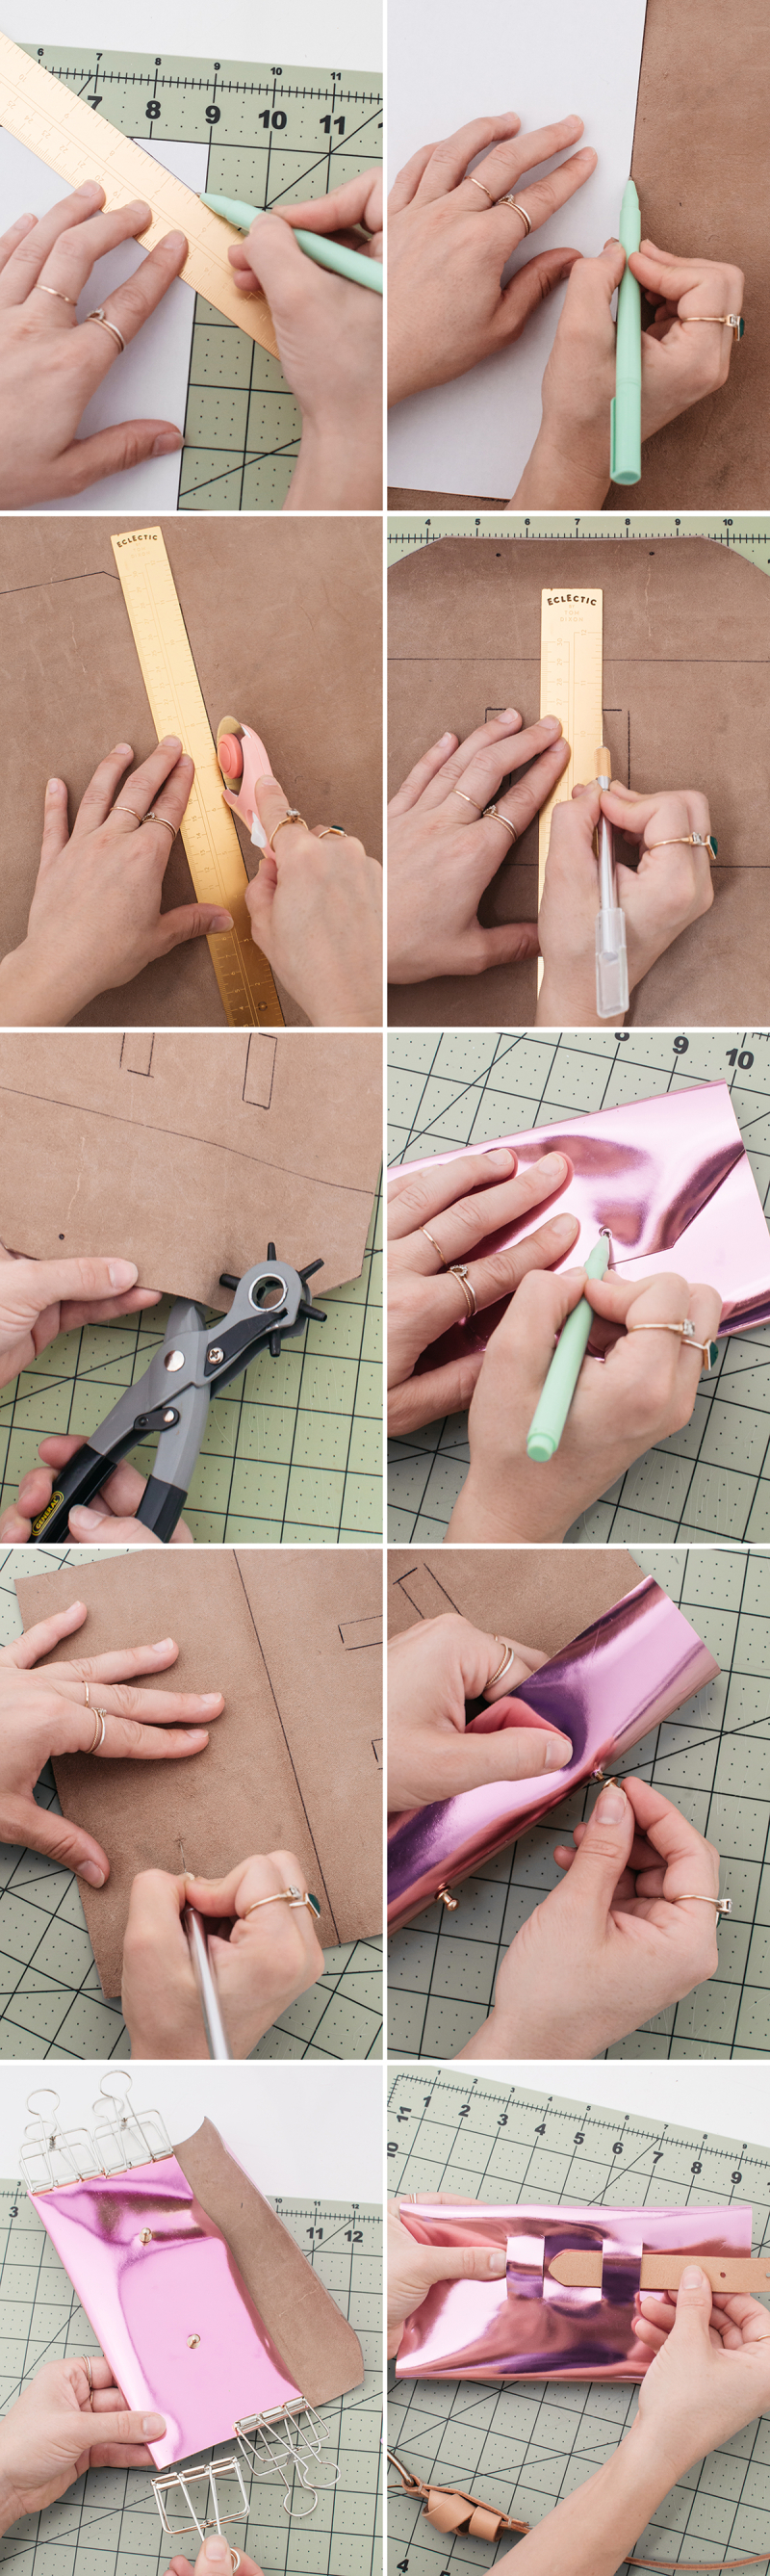 2018_08_22_Belt-Bag-DIY-10-blog